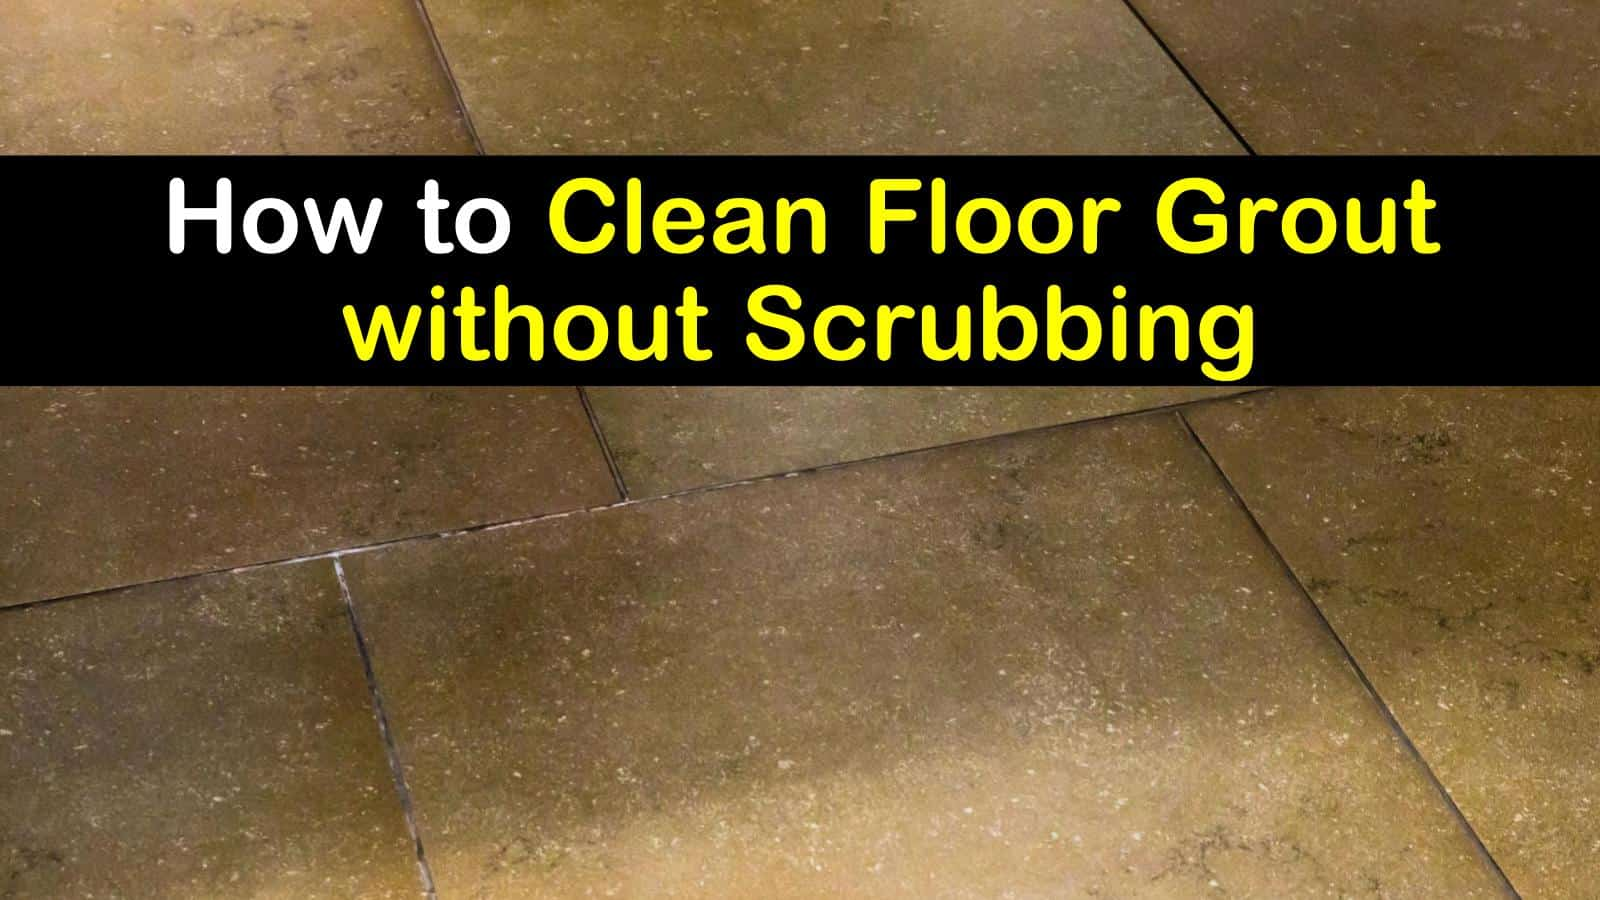 to clean floor grout without scrubbing